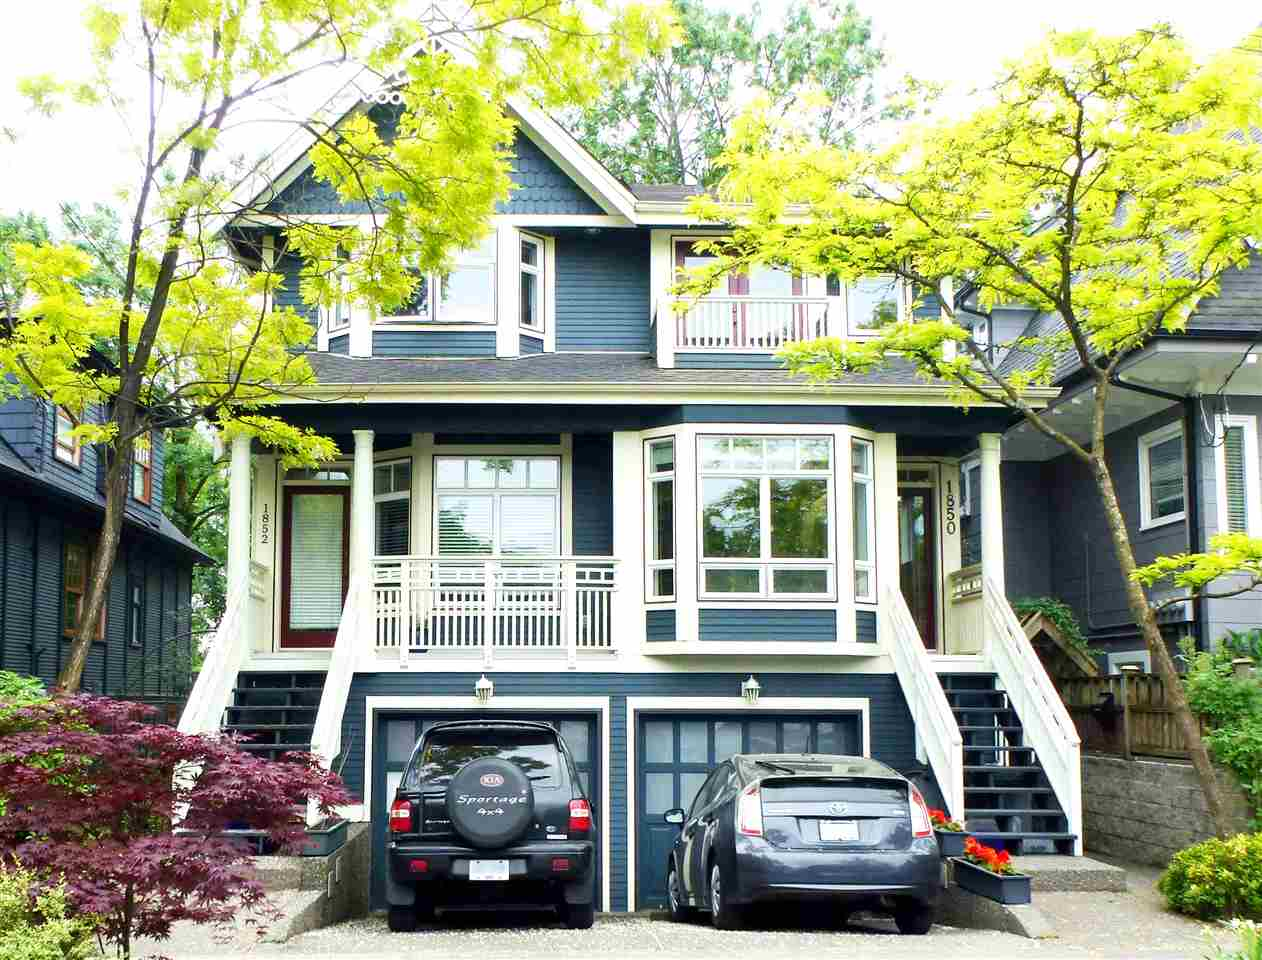 Main Photo: 1850 GRANT Street in Vancouver: Grandview VE House 1/2 Duplex for sale (Vancouver East)  : MLS® # R2069613